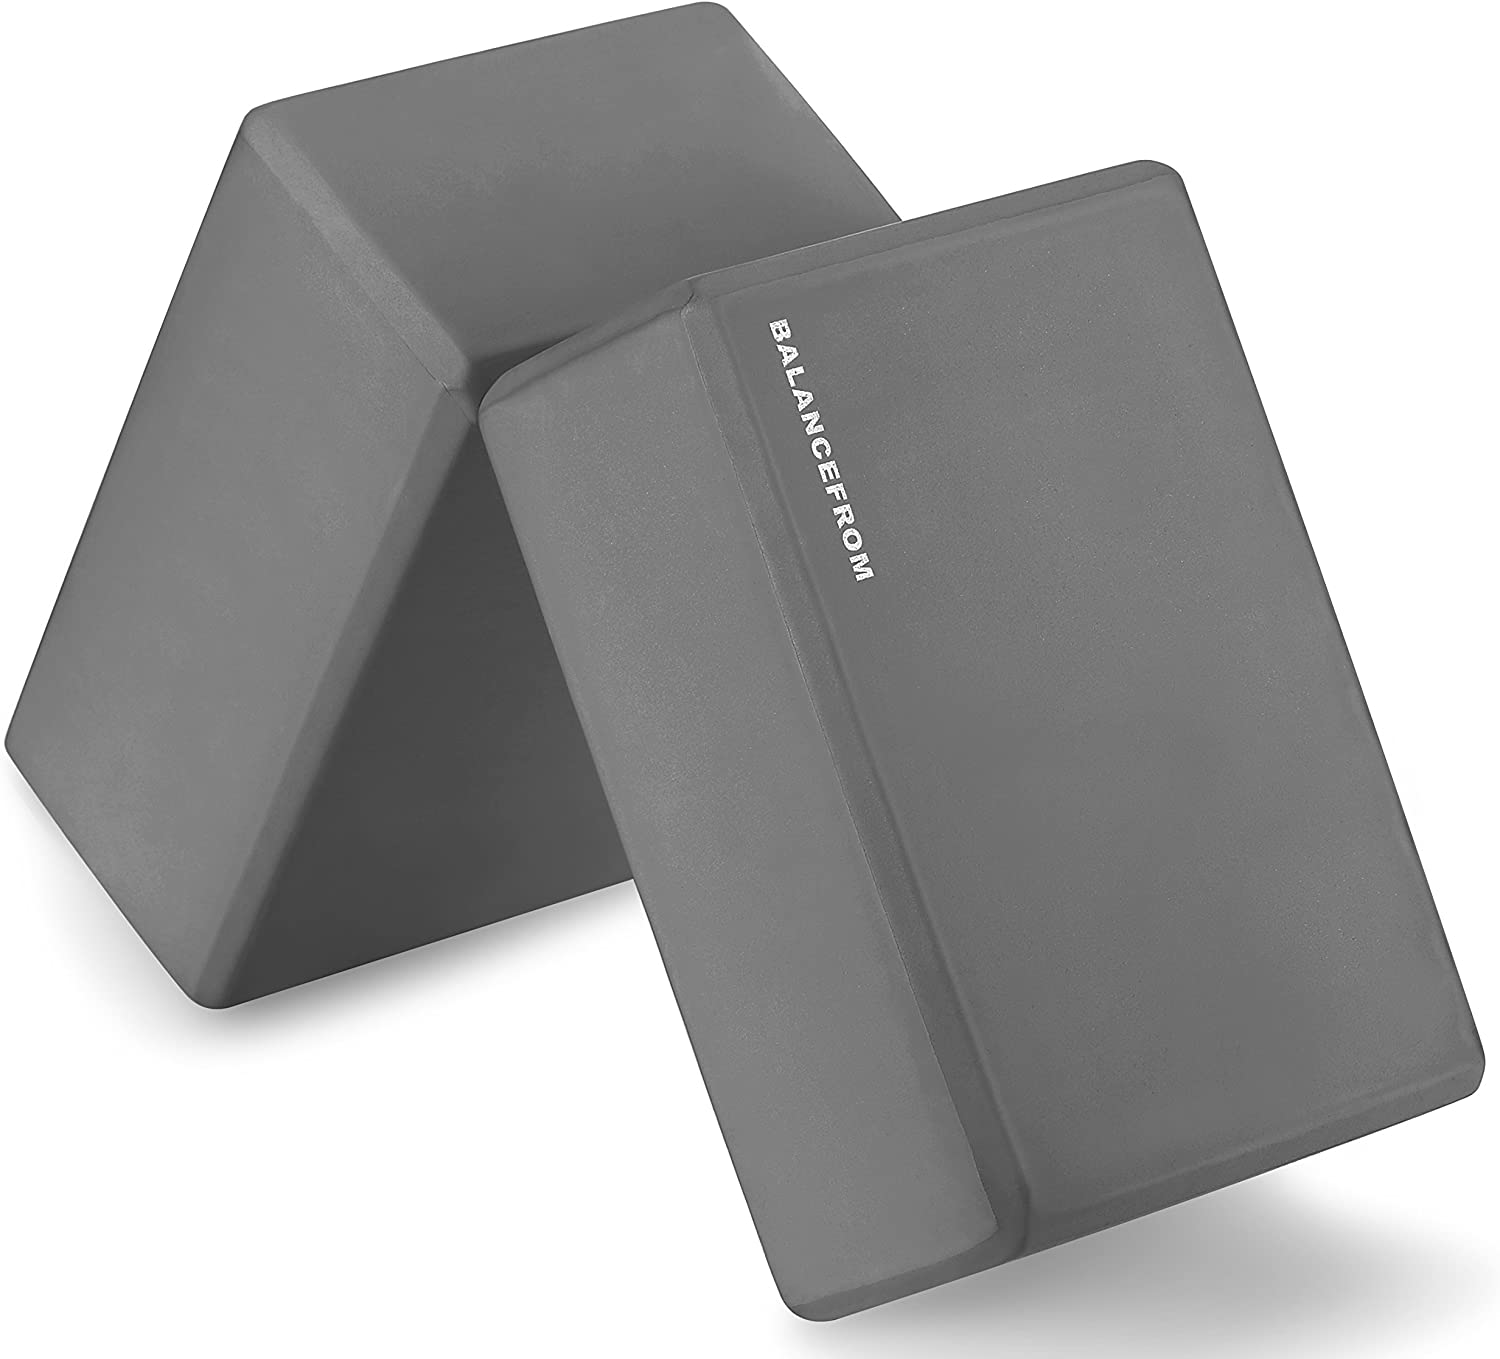 "BalanceFrom GoYoga Set of 2 High Density Yoga Blocks, 9""x6""x4"" Each [Newest Version]"